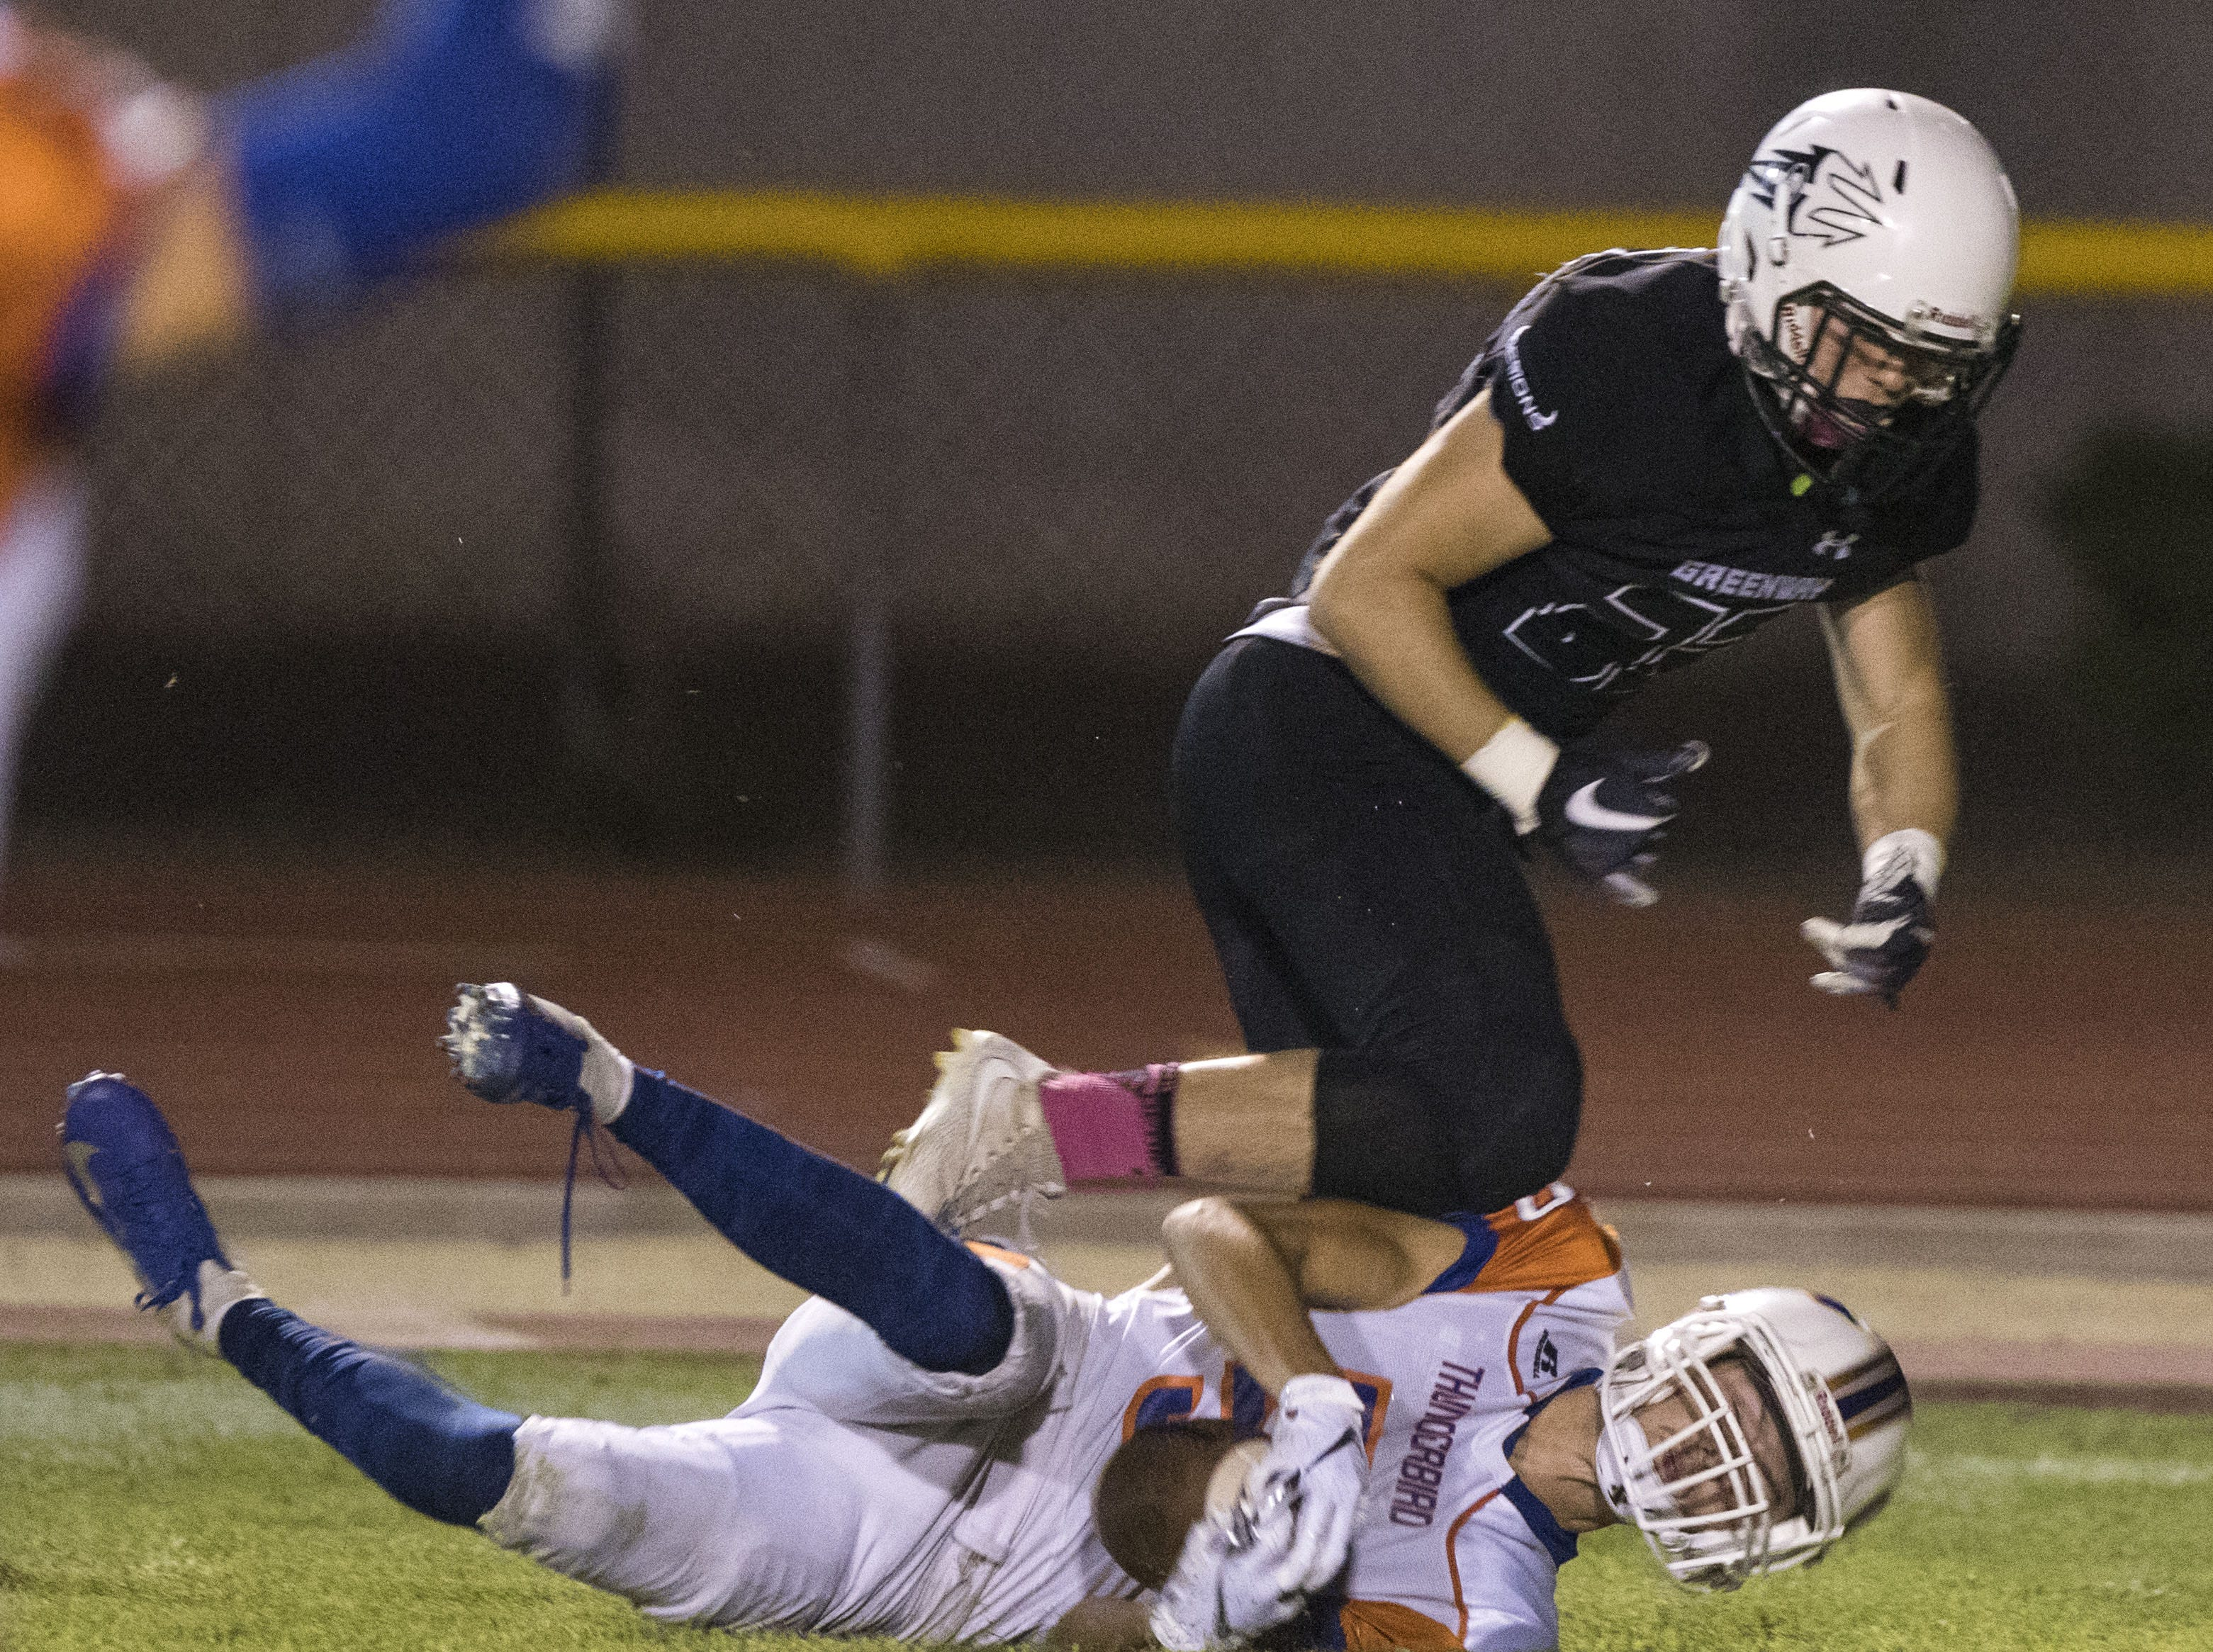 Despite being on the bottom Thunderbird's Joey Hamen comes up with an interception during their game with Washington in Phoenix Friday, Oct. 5, 2018. #azhsfb